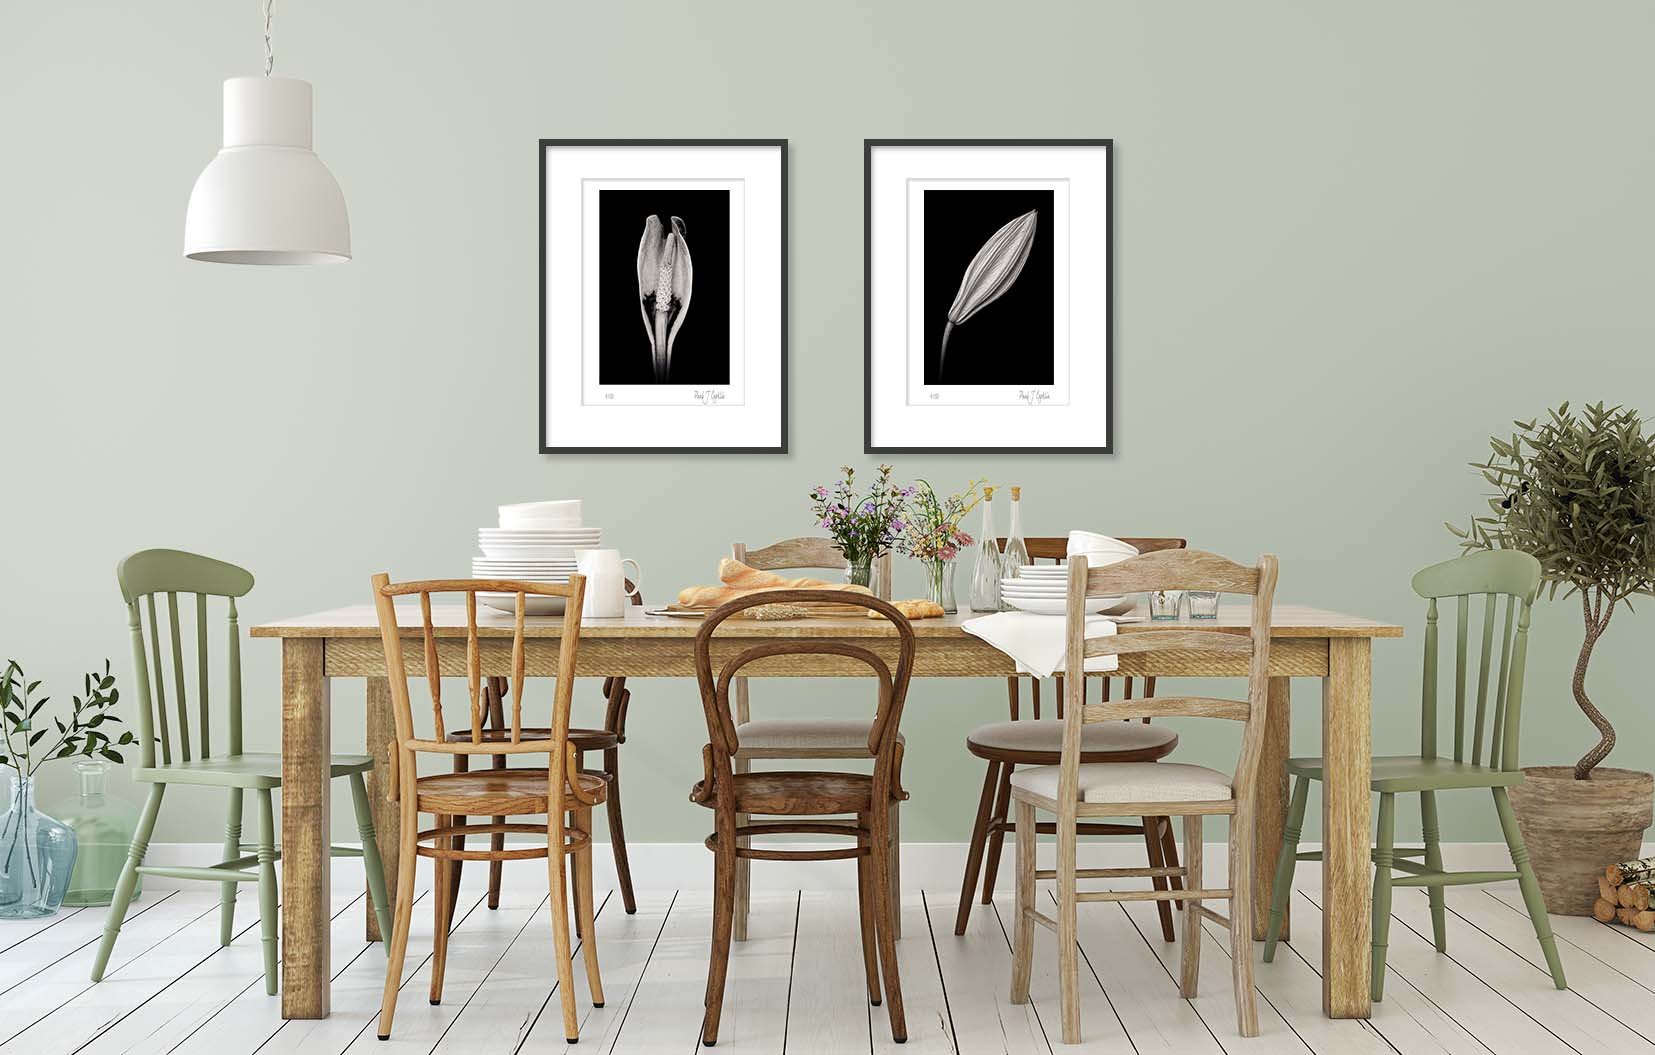 Fine art black and white photographs of a calla lily. Limited edition photographic prints shown framed and on the wall.